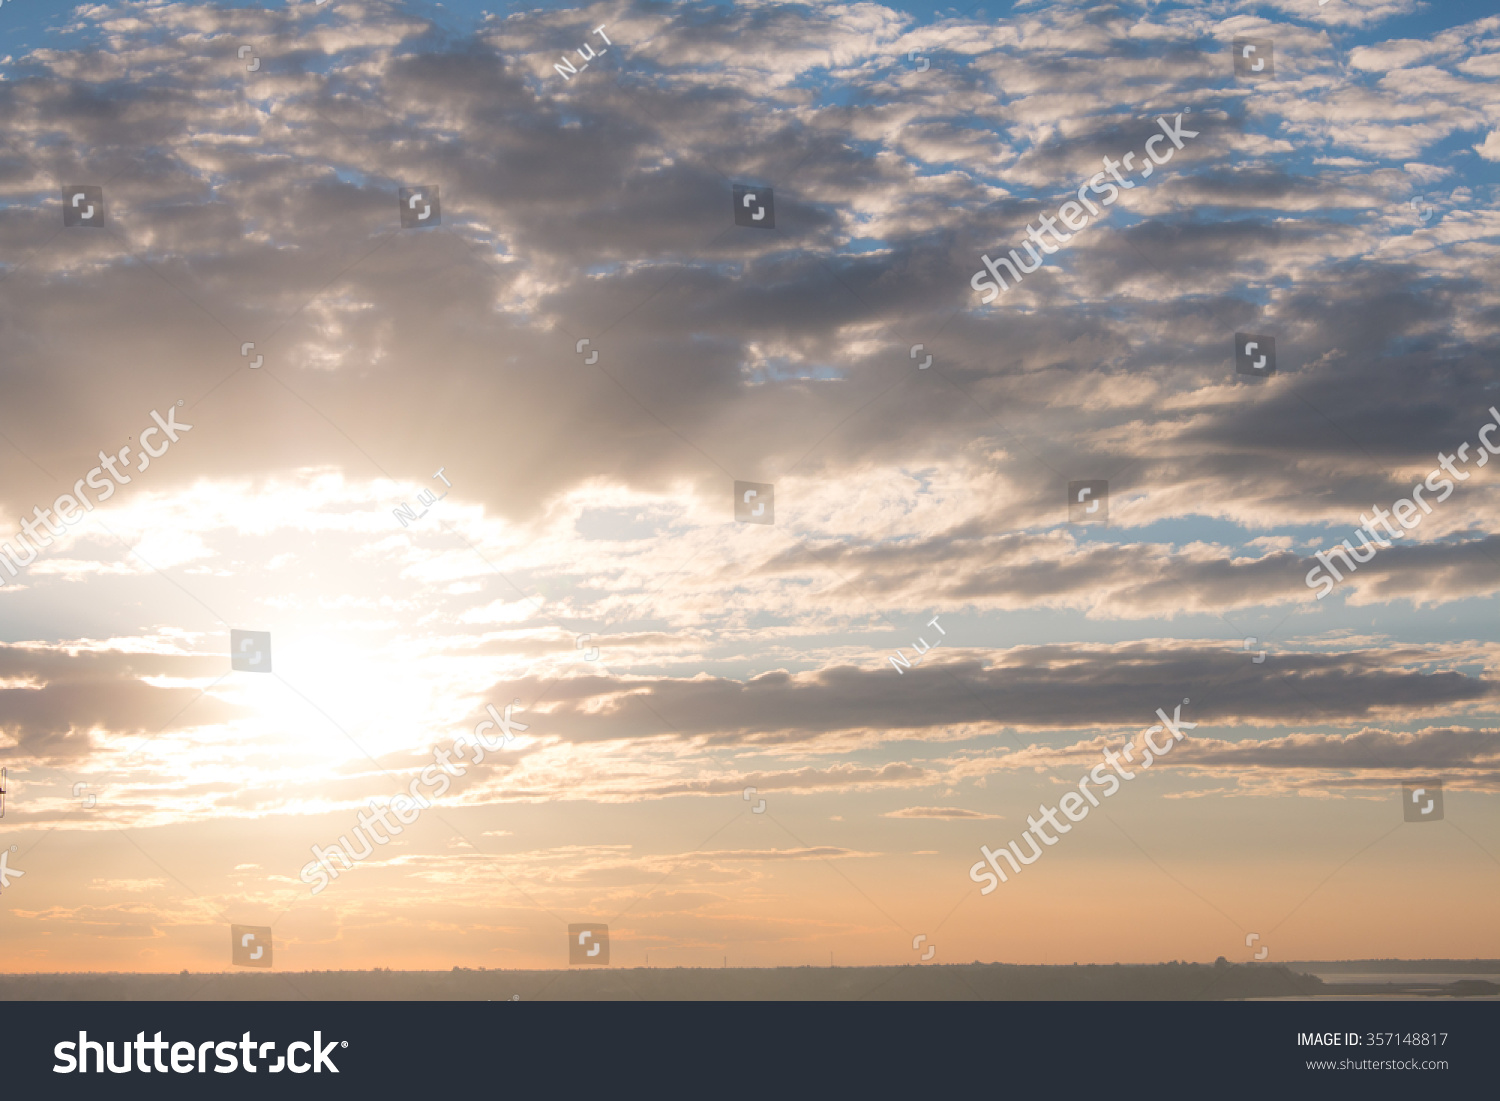 Beauty Blue Sky Clouds Daytime Thailand Stock Photo ...